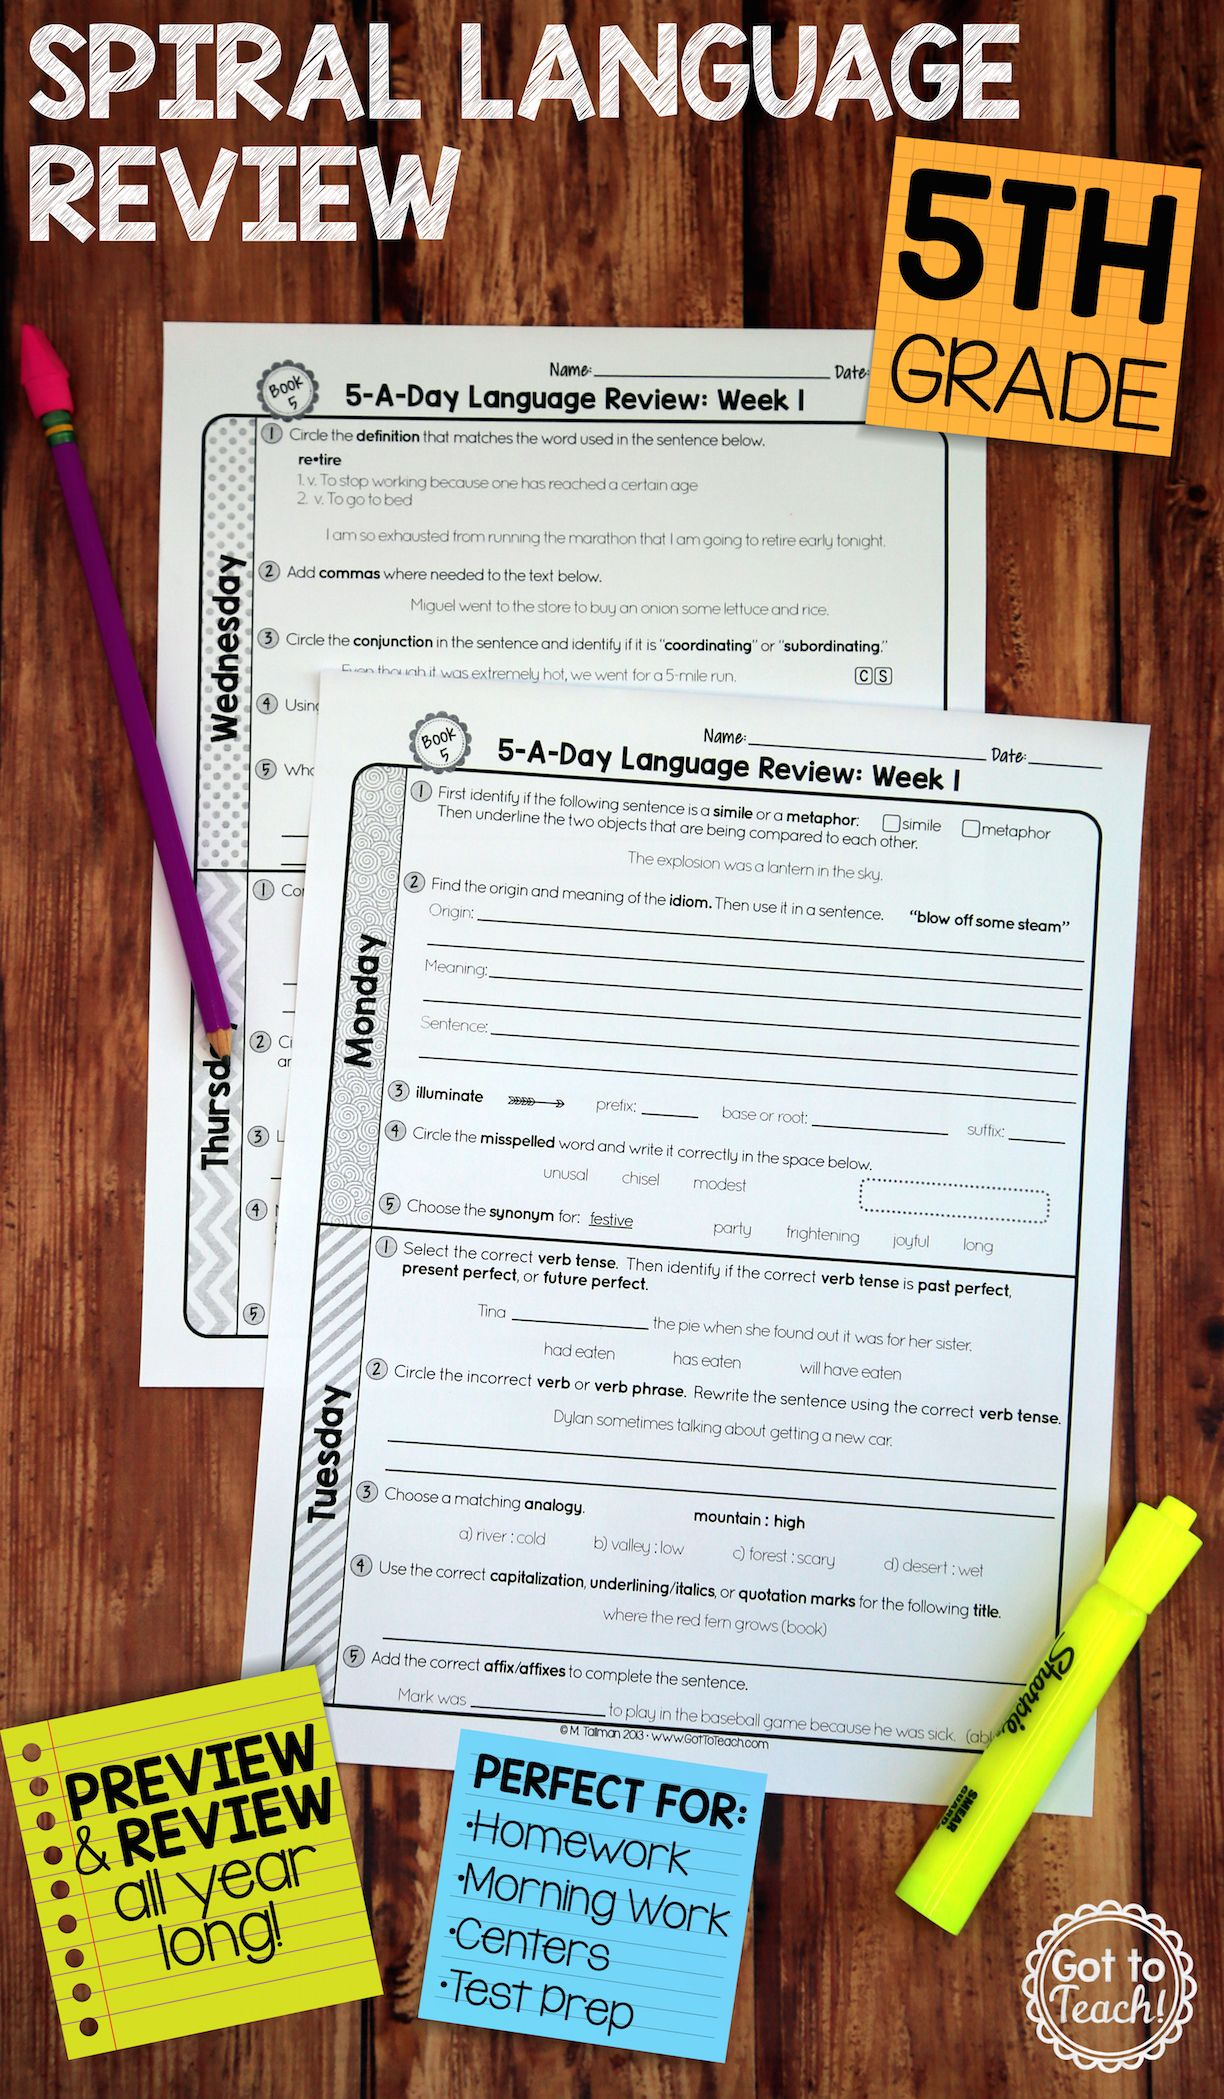 36 Weeks Of Daily Common Core Language Review For Fifth Grade Preview And Important